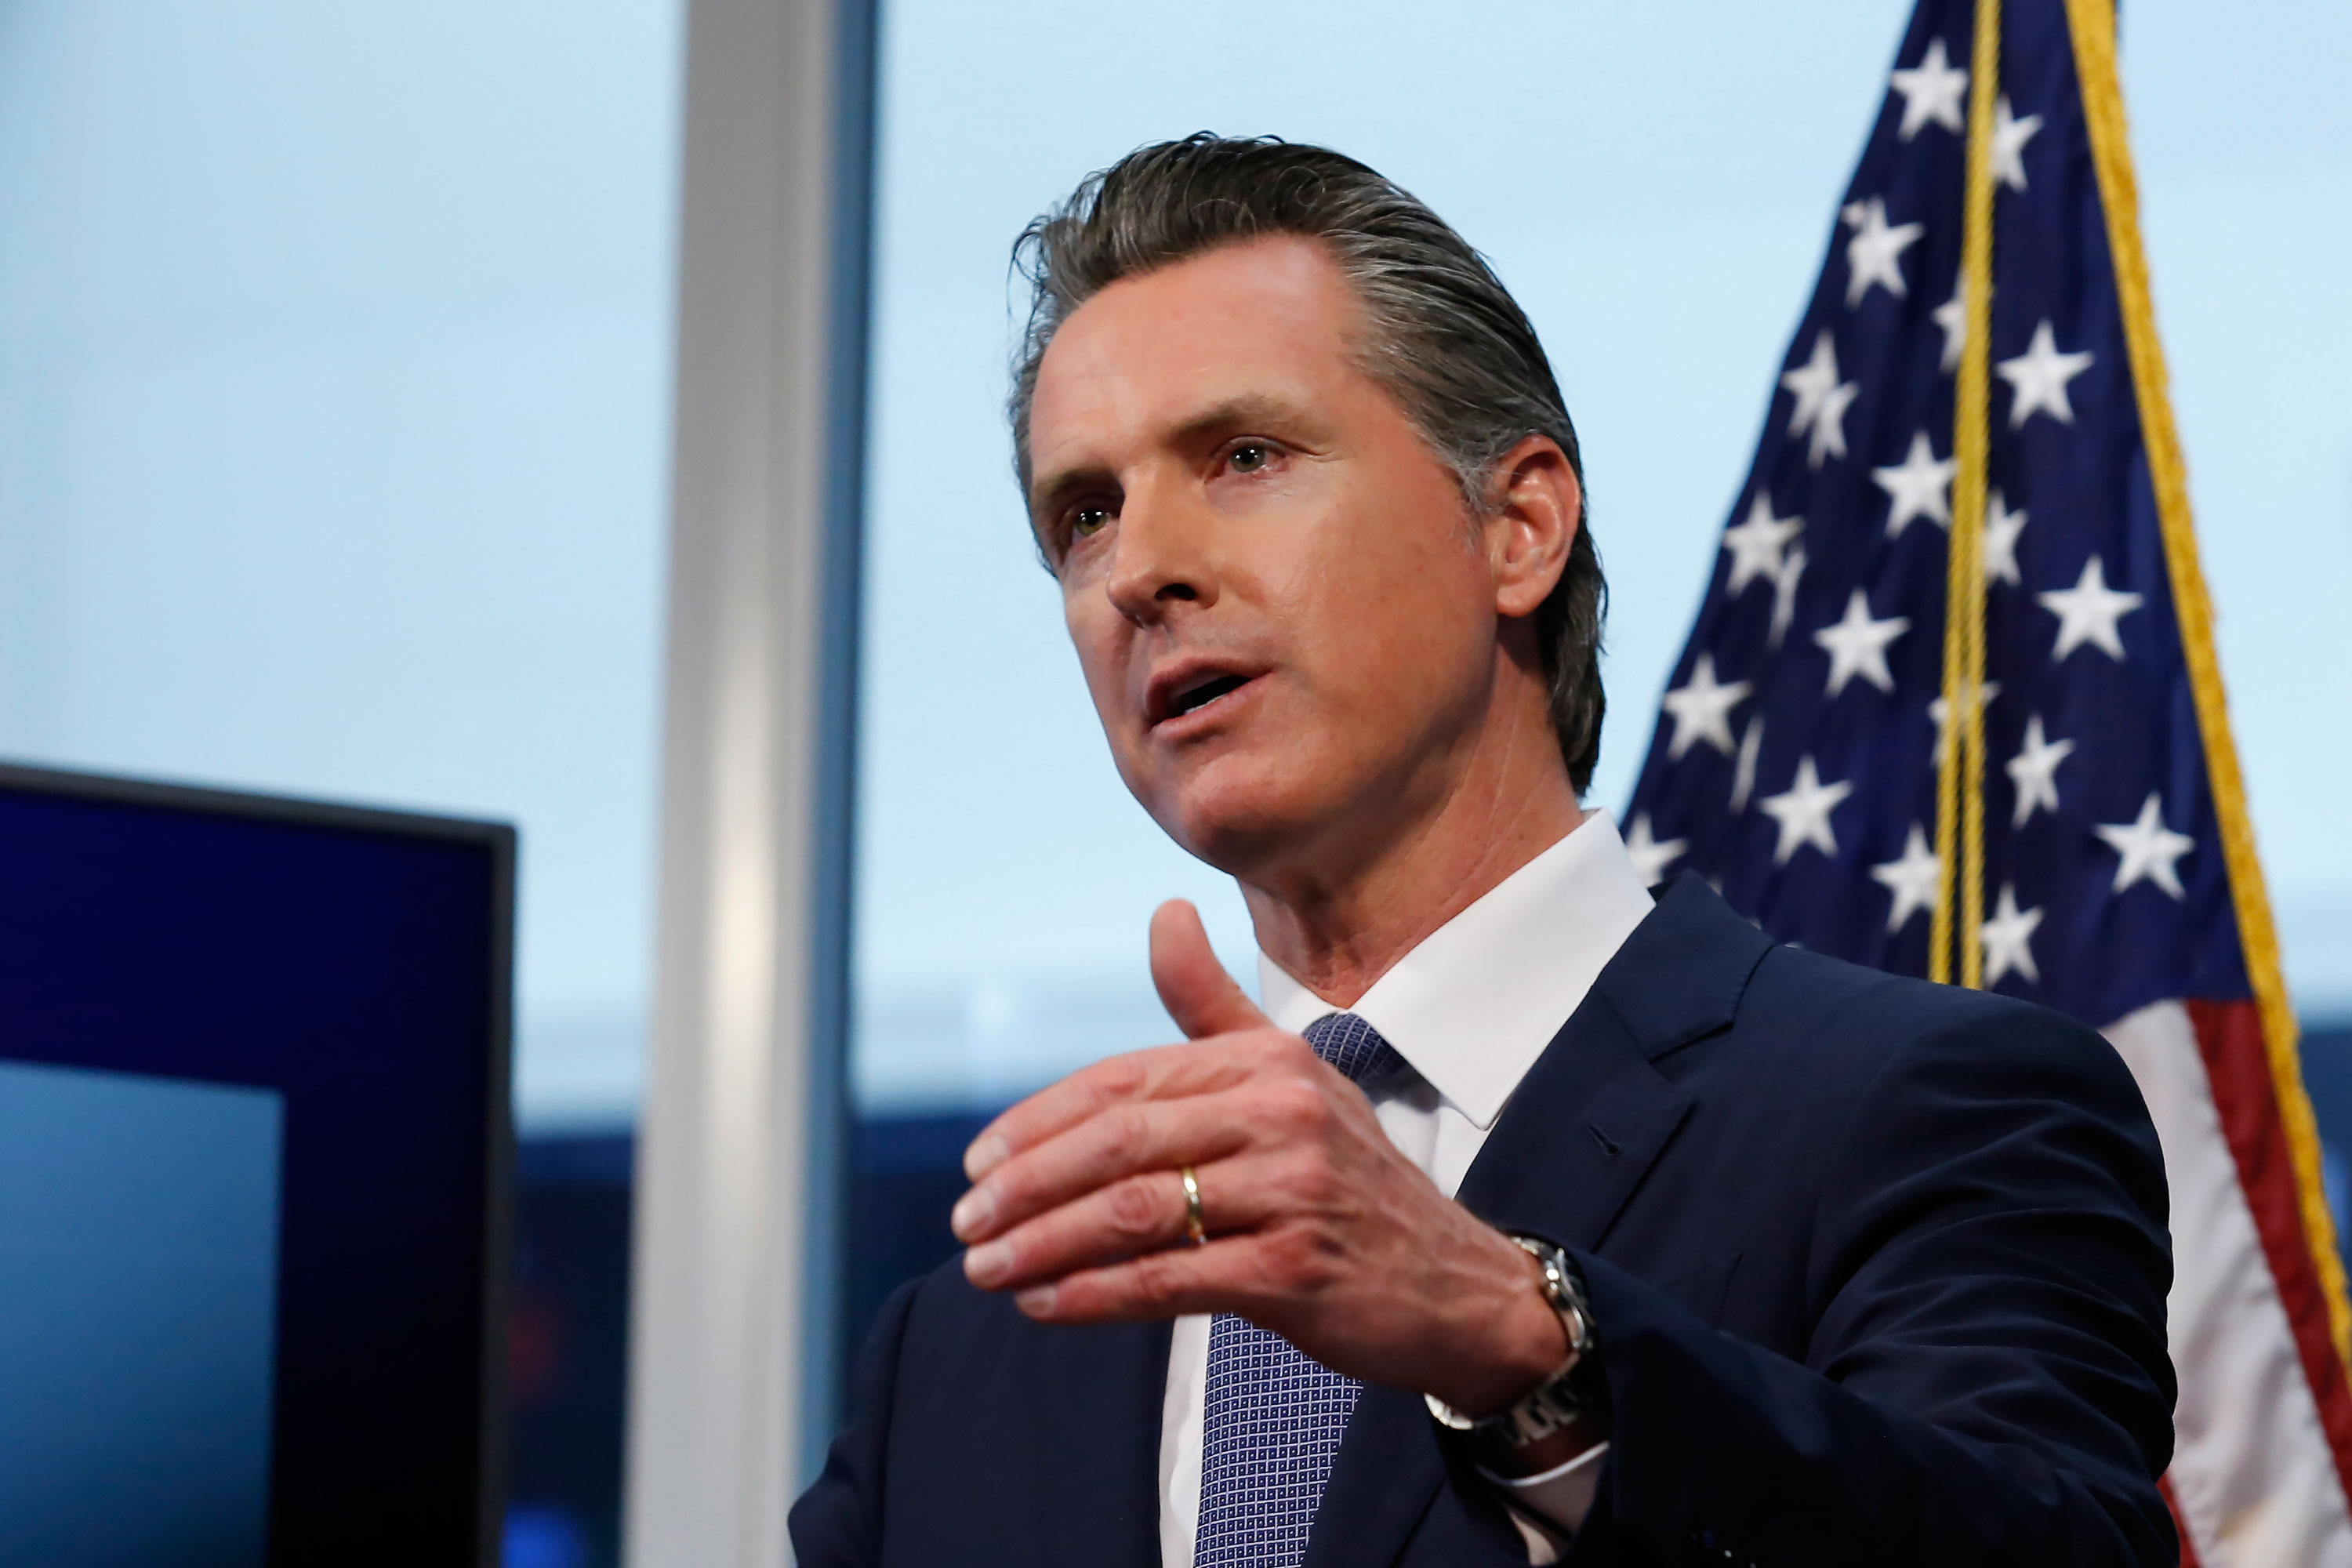 Gov. Gavin Newsom speaks at a news conference in Rancho Cordova, California on April 1.